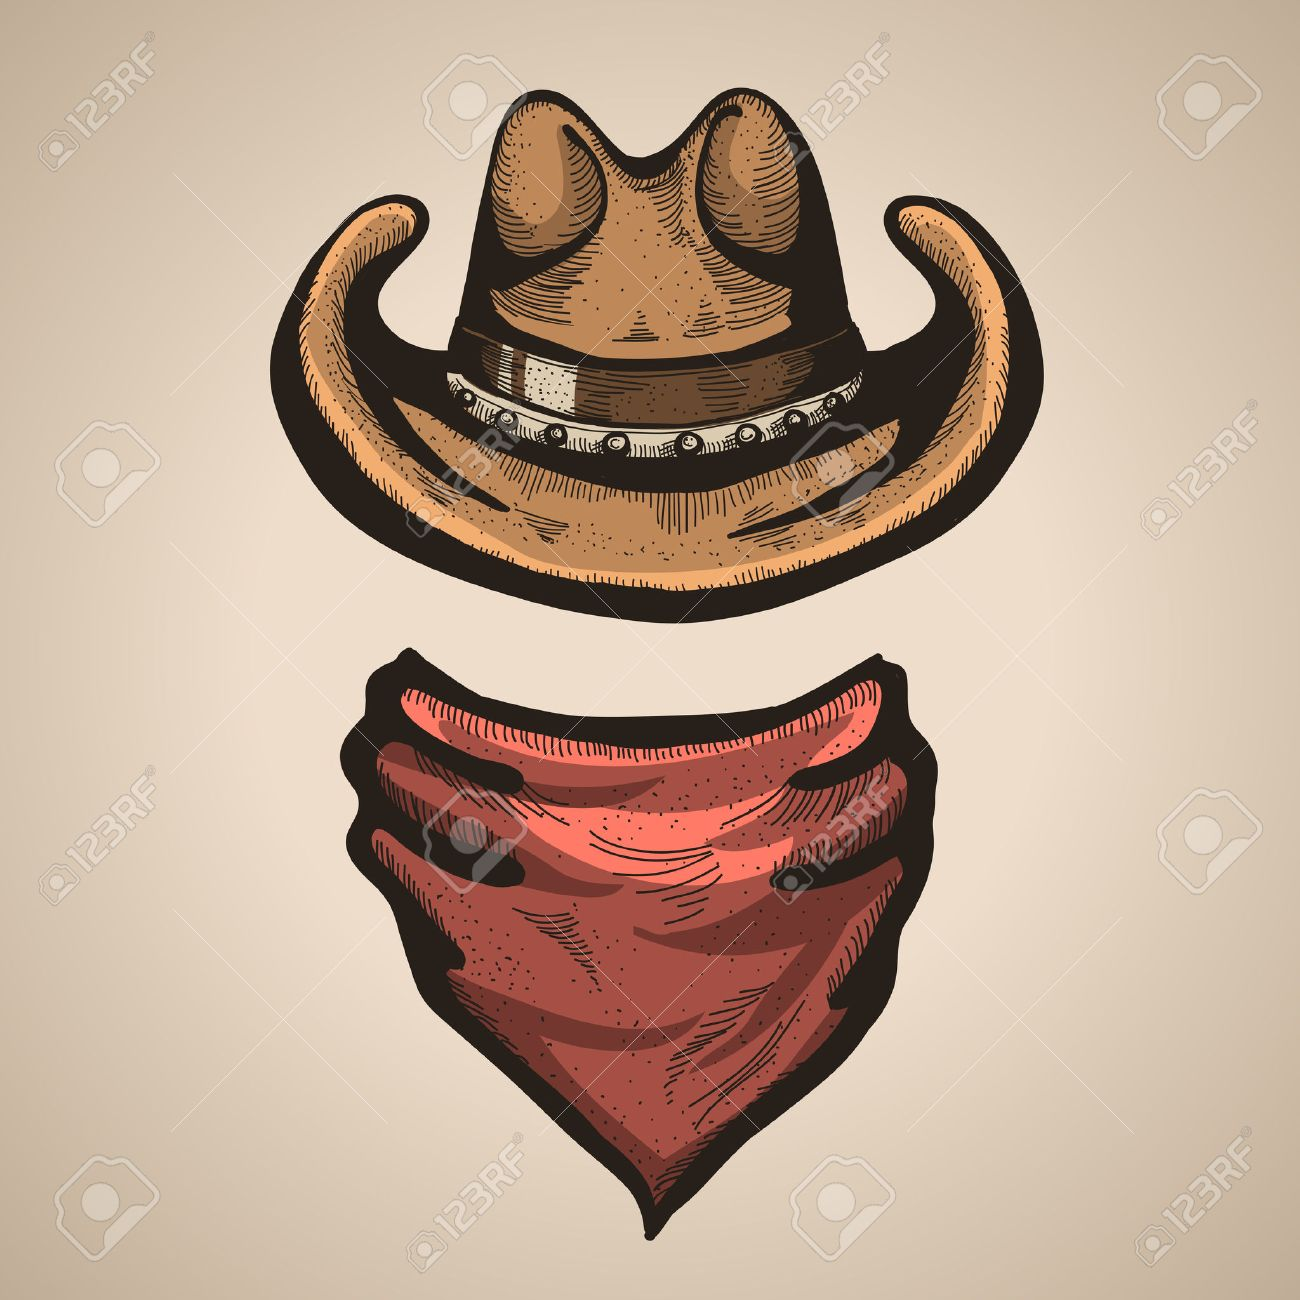 Cowboy hat and bandana scarf. Stock Vector - 31090523 fd48ea4217c